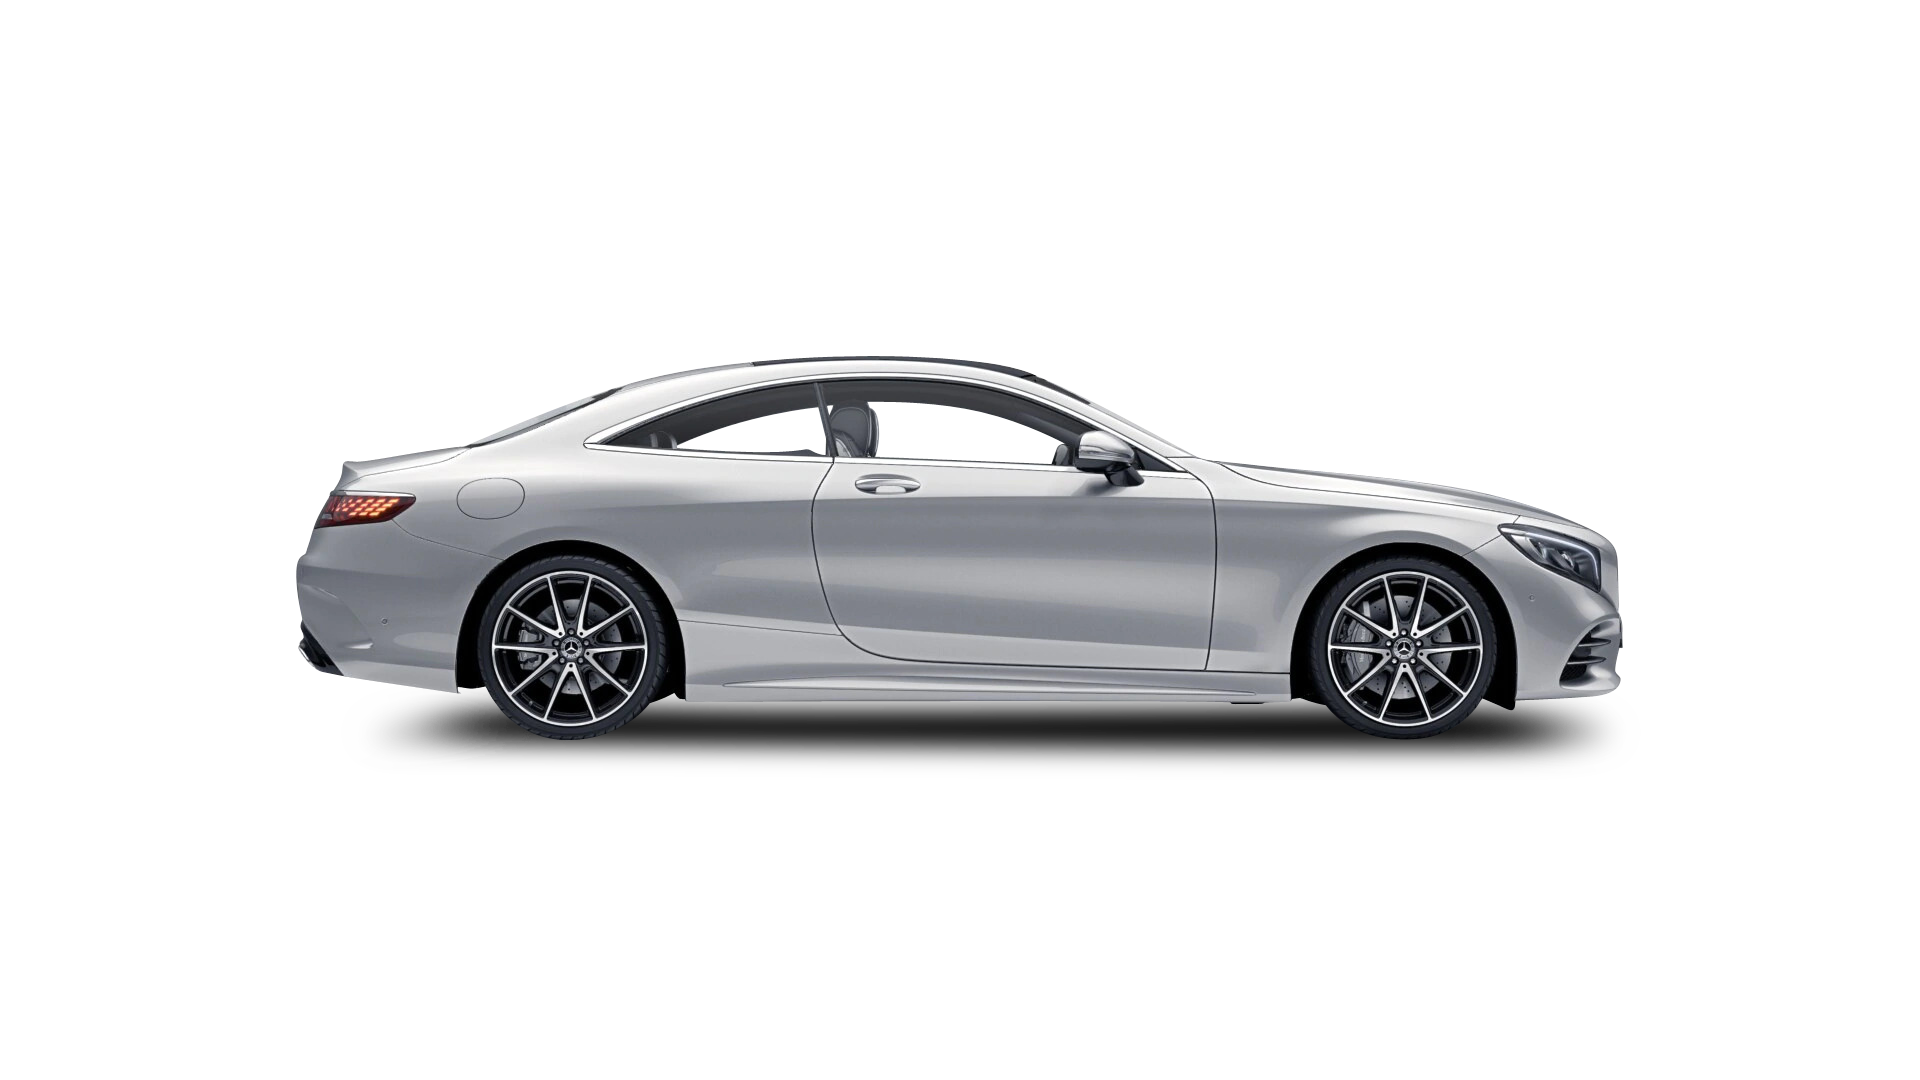 https://cogcms-images.azureedge.net/media/35339/s-class-coupe-grand-edition.png